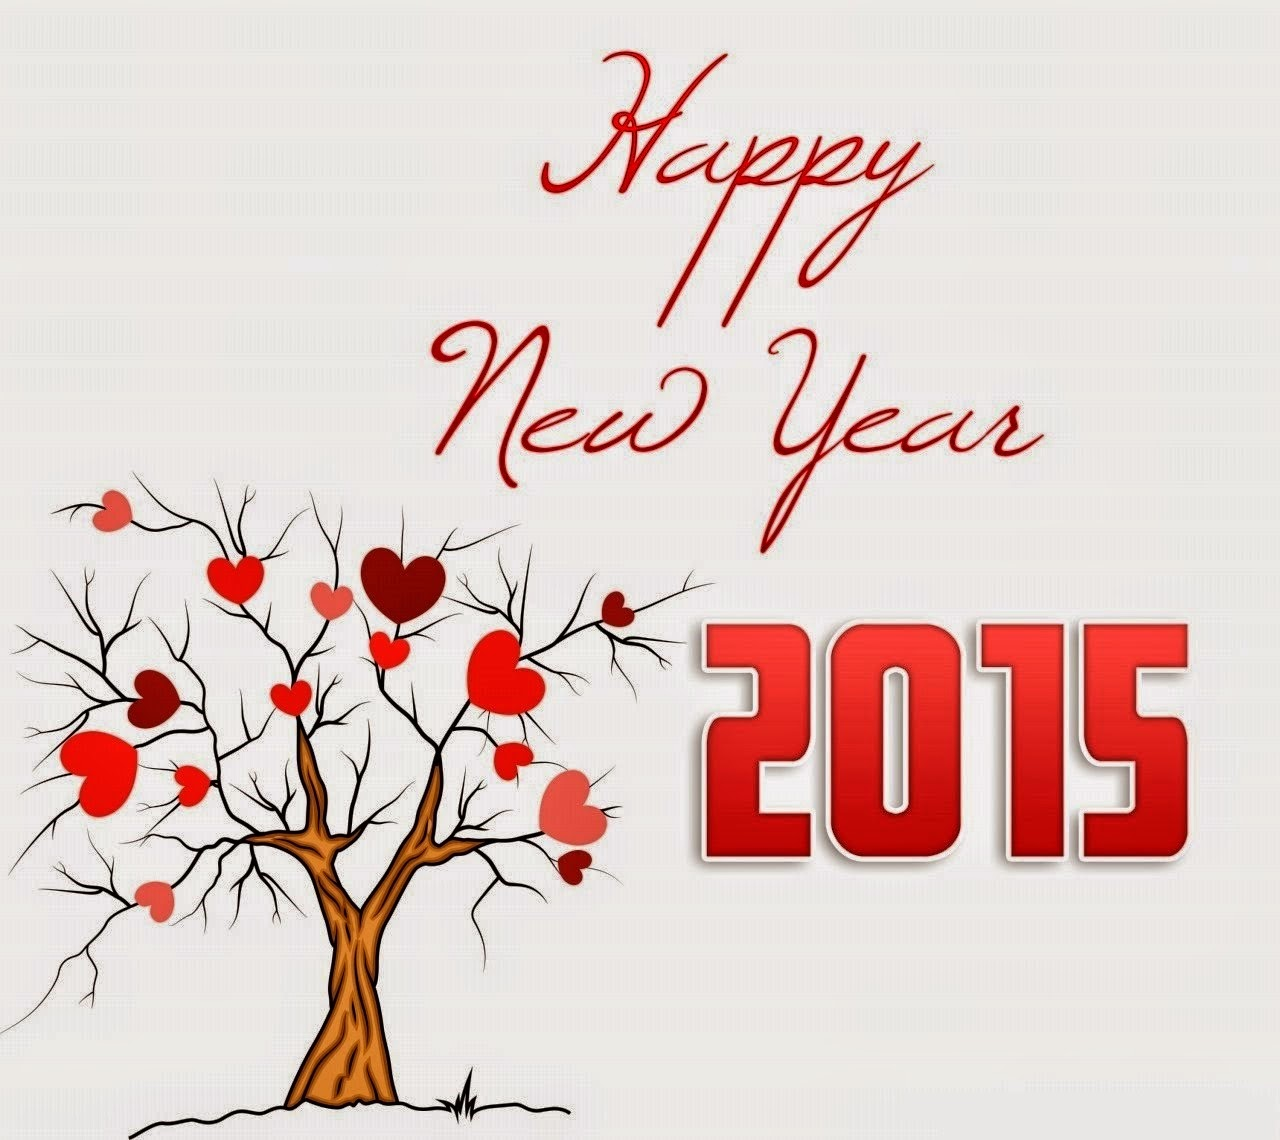 Romantic greeting cards for happy new year 2015 merry christmas romantic greeting cards for happy new year 2015 m4hsunfo